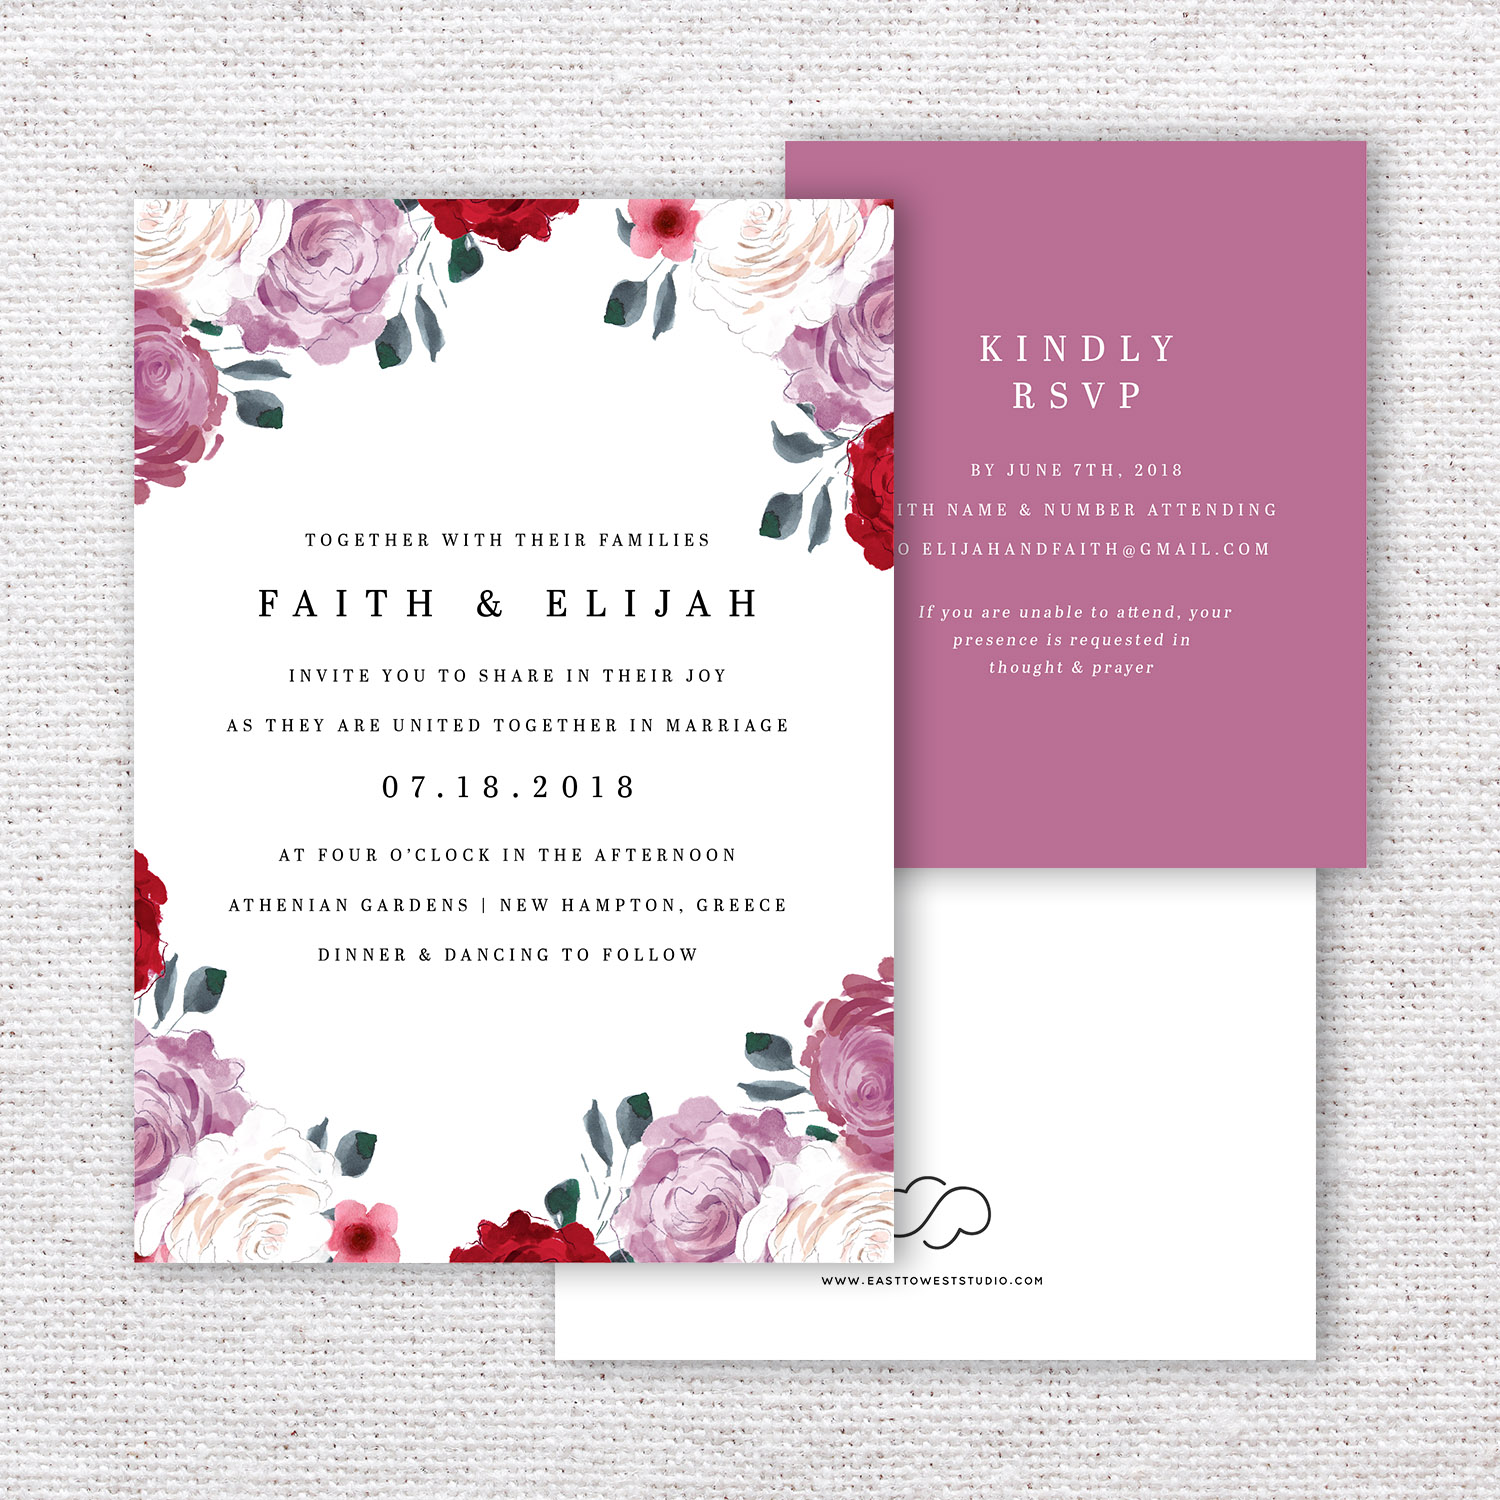 Blushing Bride Wedding Invitations